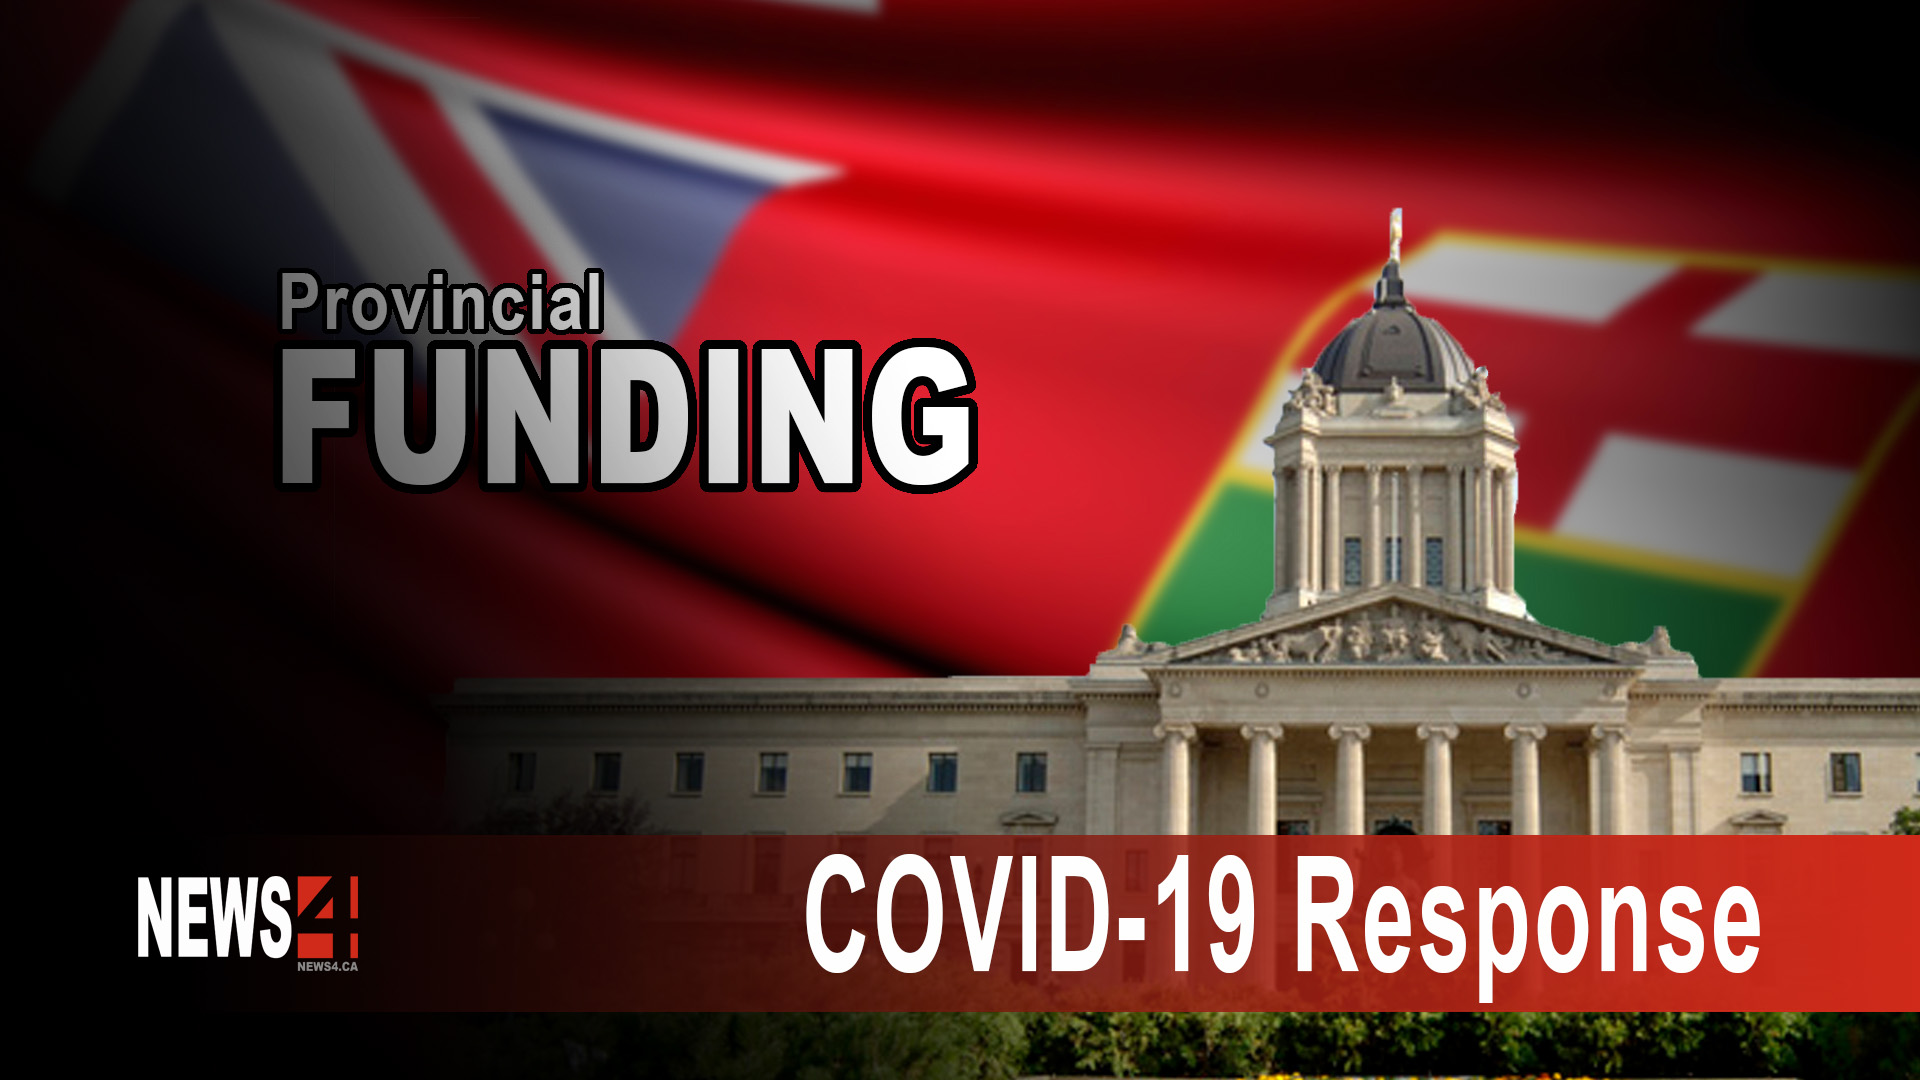 Provincial Funding Covid-19 Response